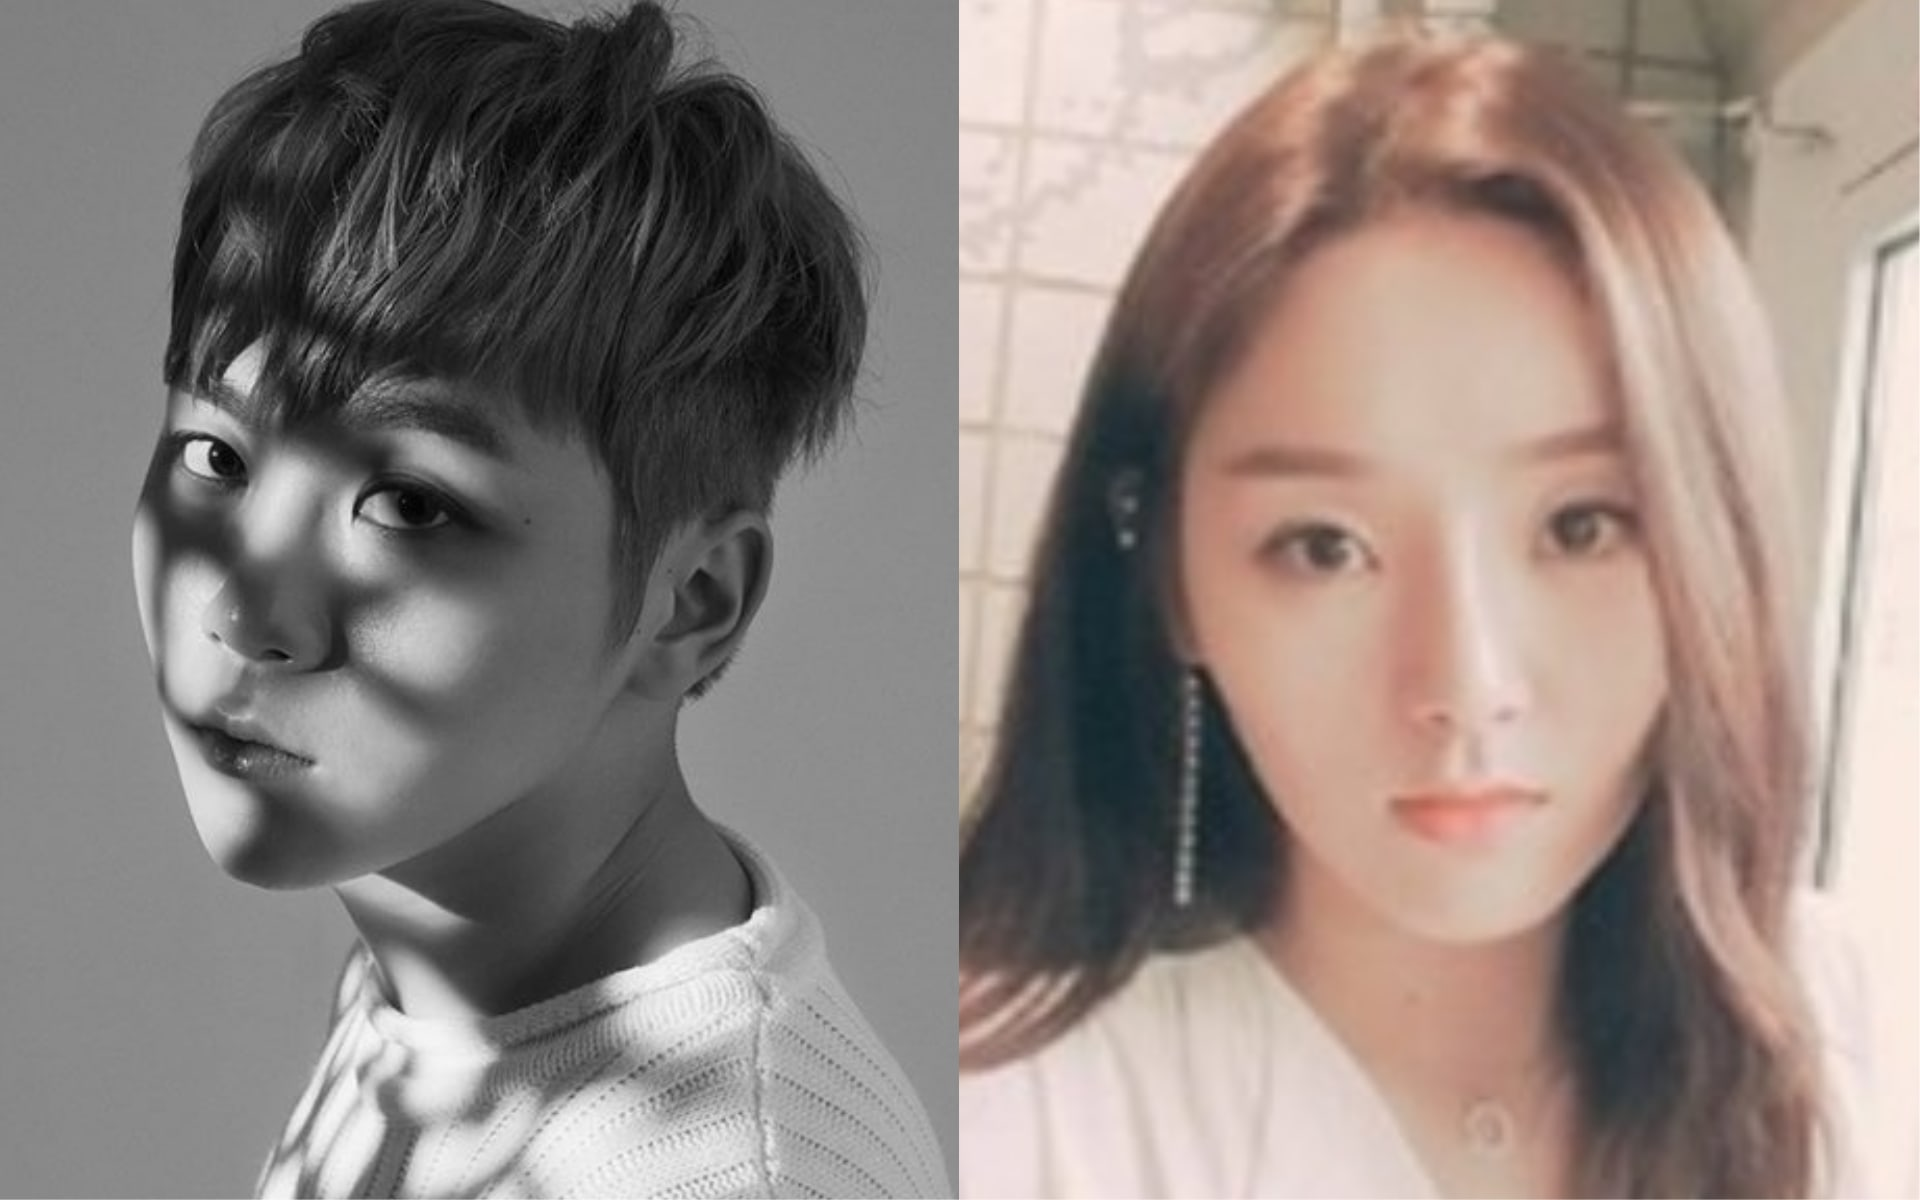 SEVENTEEN's Seungkwan's Older Sister Appears In Mnet's Reality Dating Show